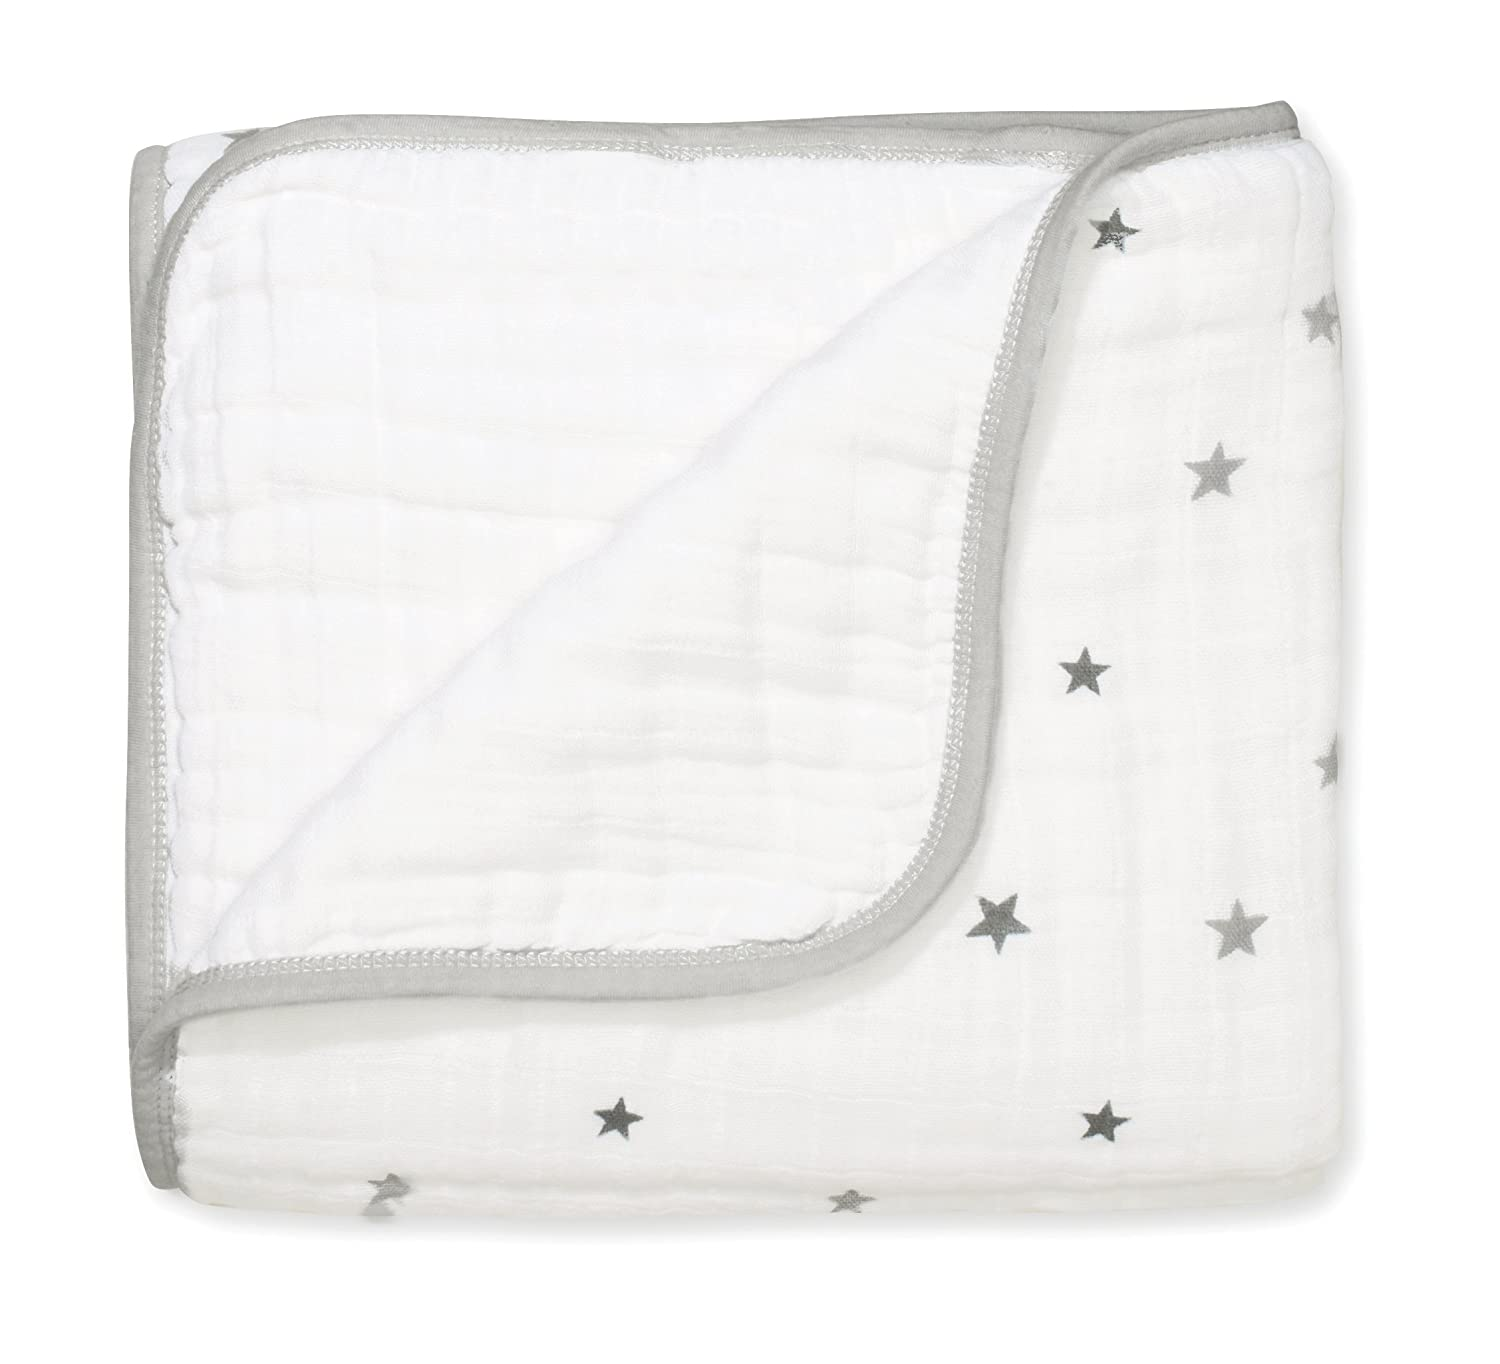 aden + anais dream blanket, 4 layers 100% cotton muslin, 120cm X 120cm, twinkle aden+anais 6038G